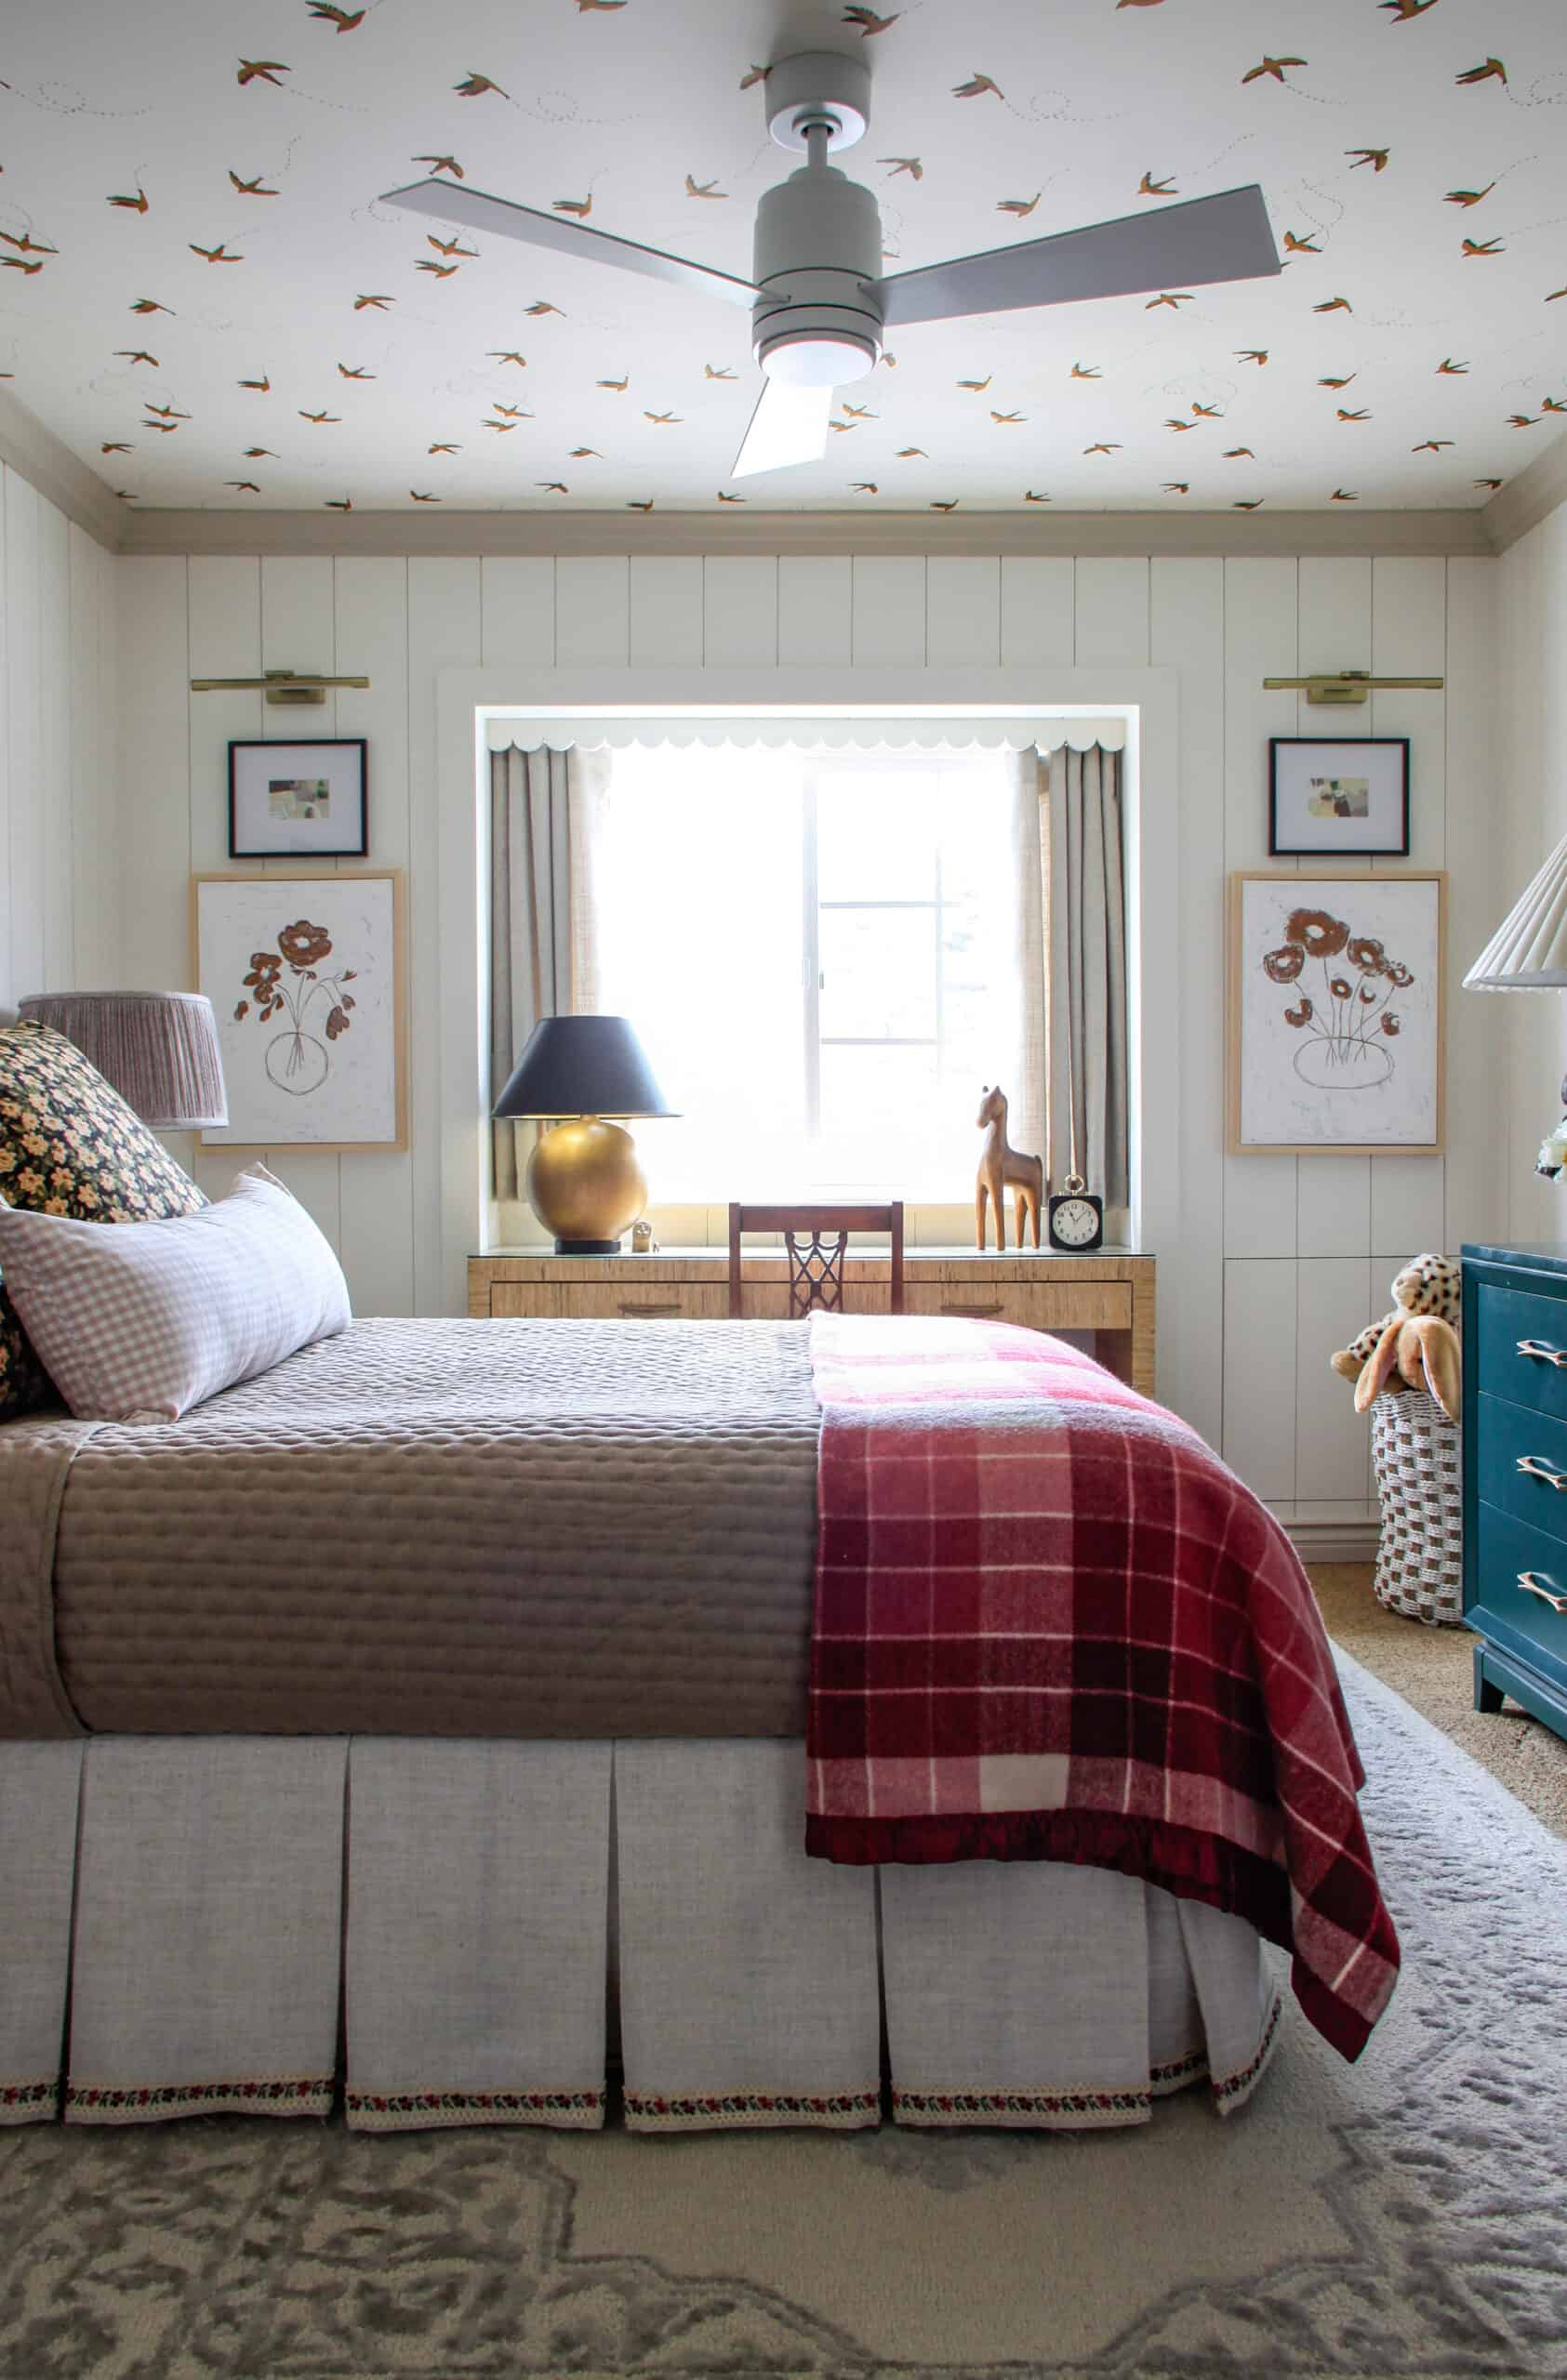 girl's bedroom with pink plaid blanket and bird wallpaper on the ceiling